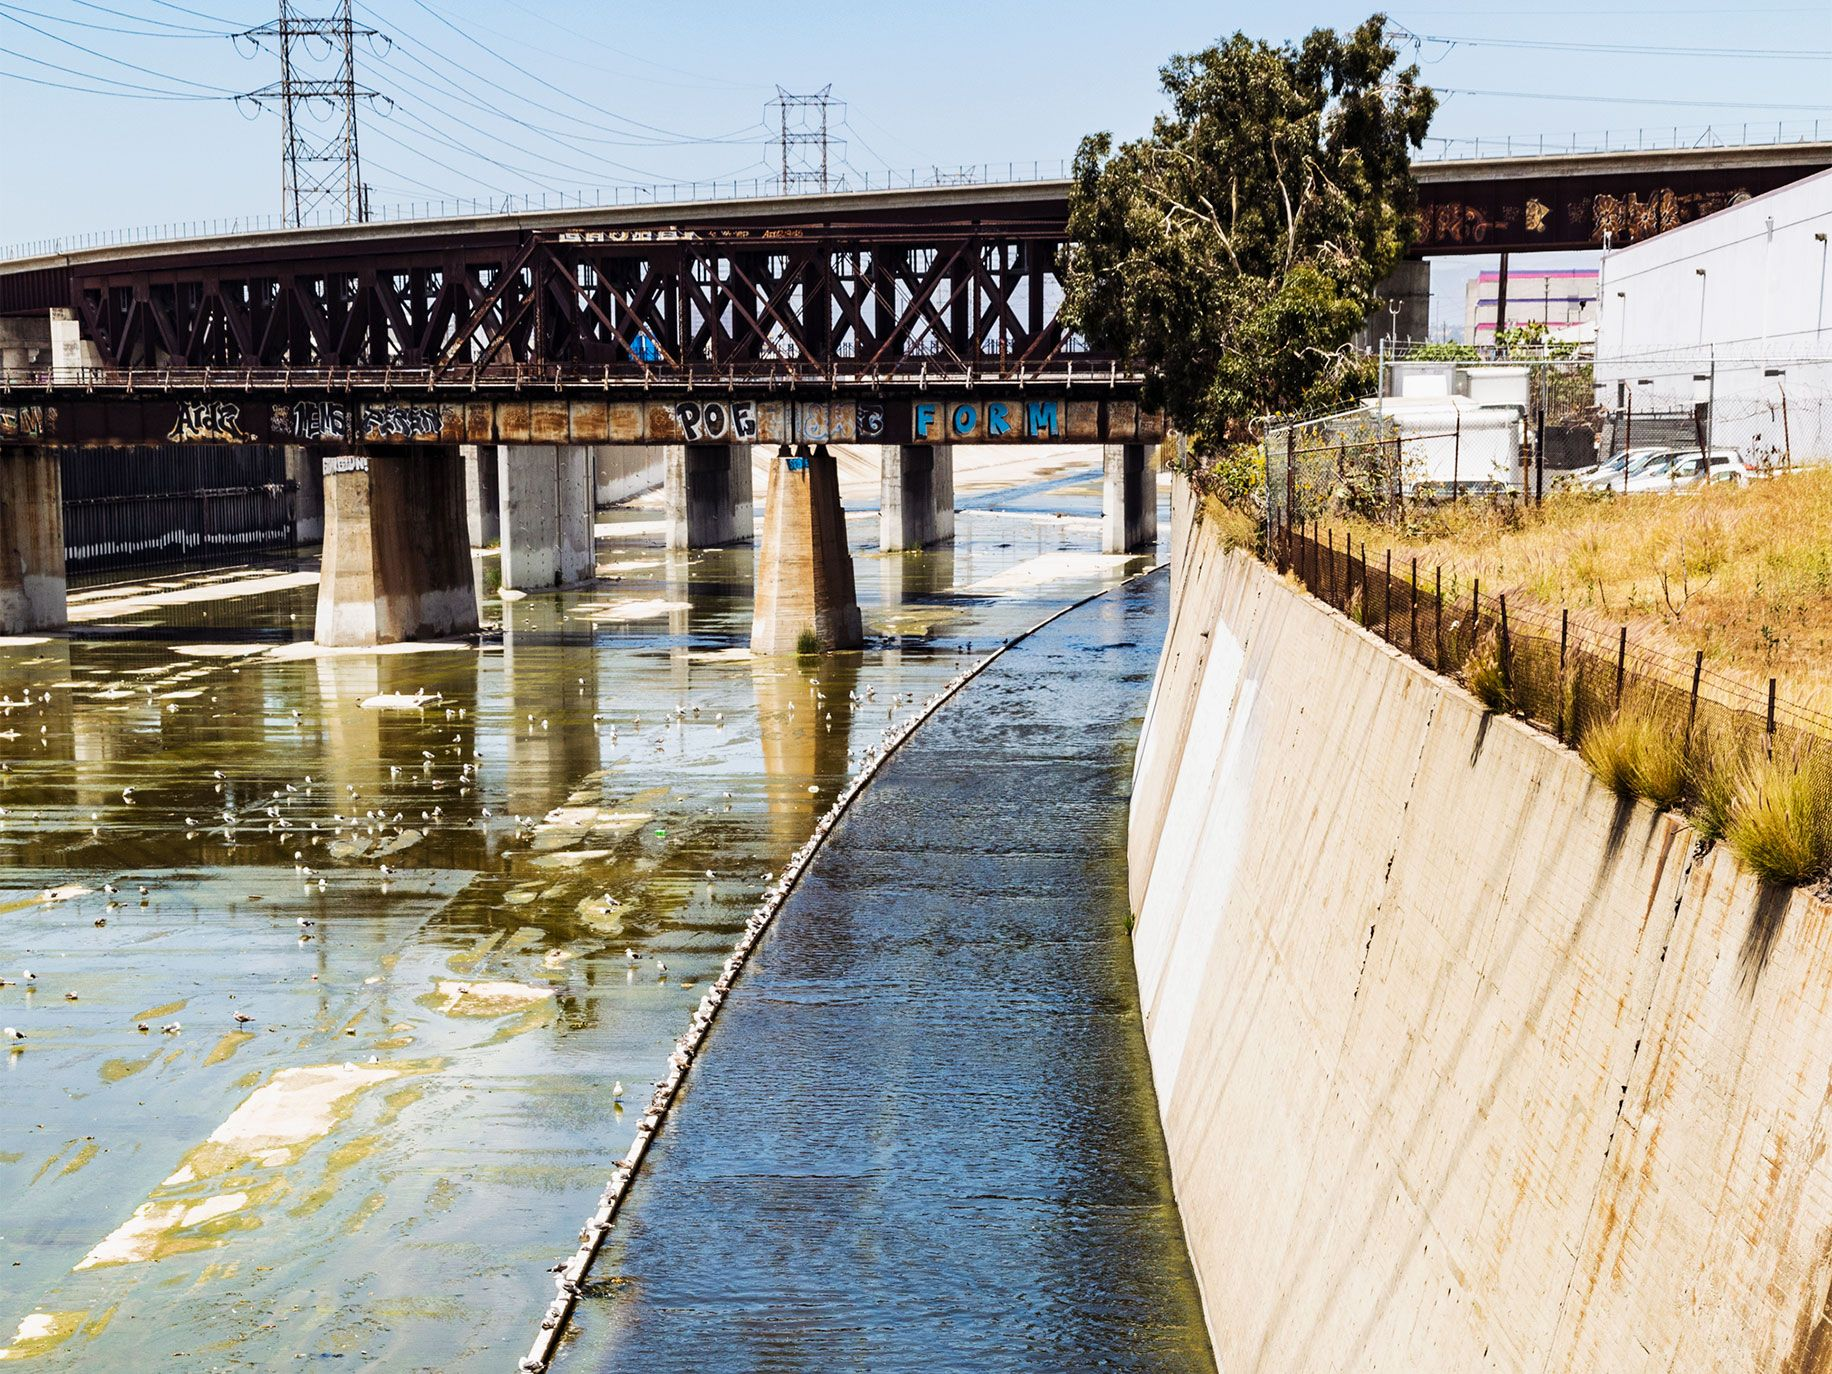 The Los Angeles River running through Vernon, located south of downtown.